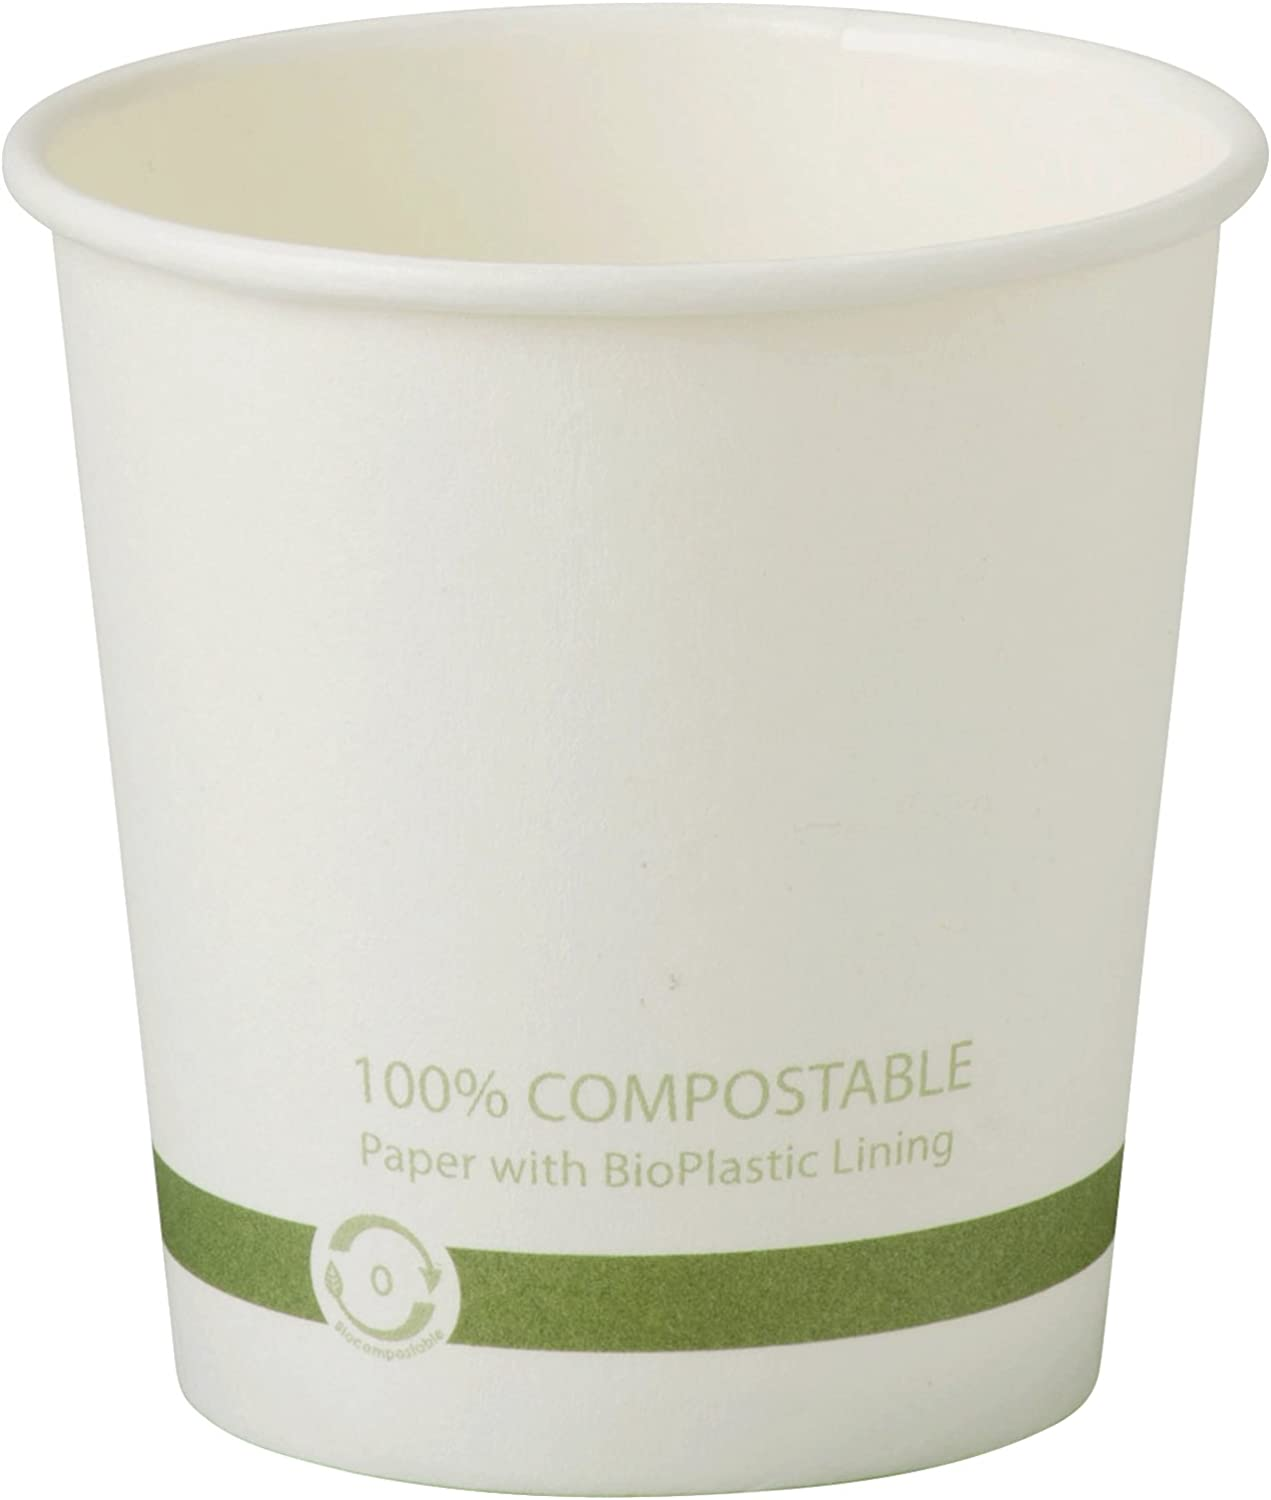 World Centric CU-PA-4 100% Compostable FSC Mix Paper Hot Cups, 4 oz, White (Pack of 1000)